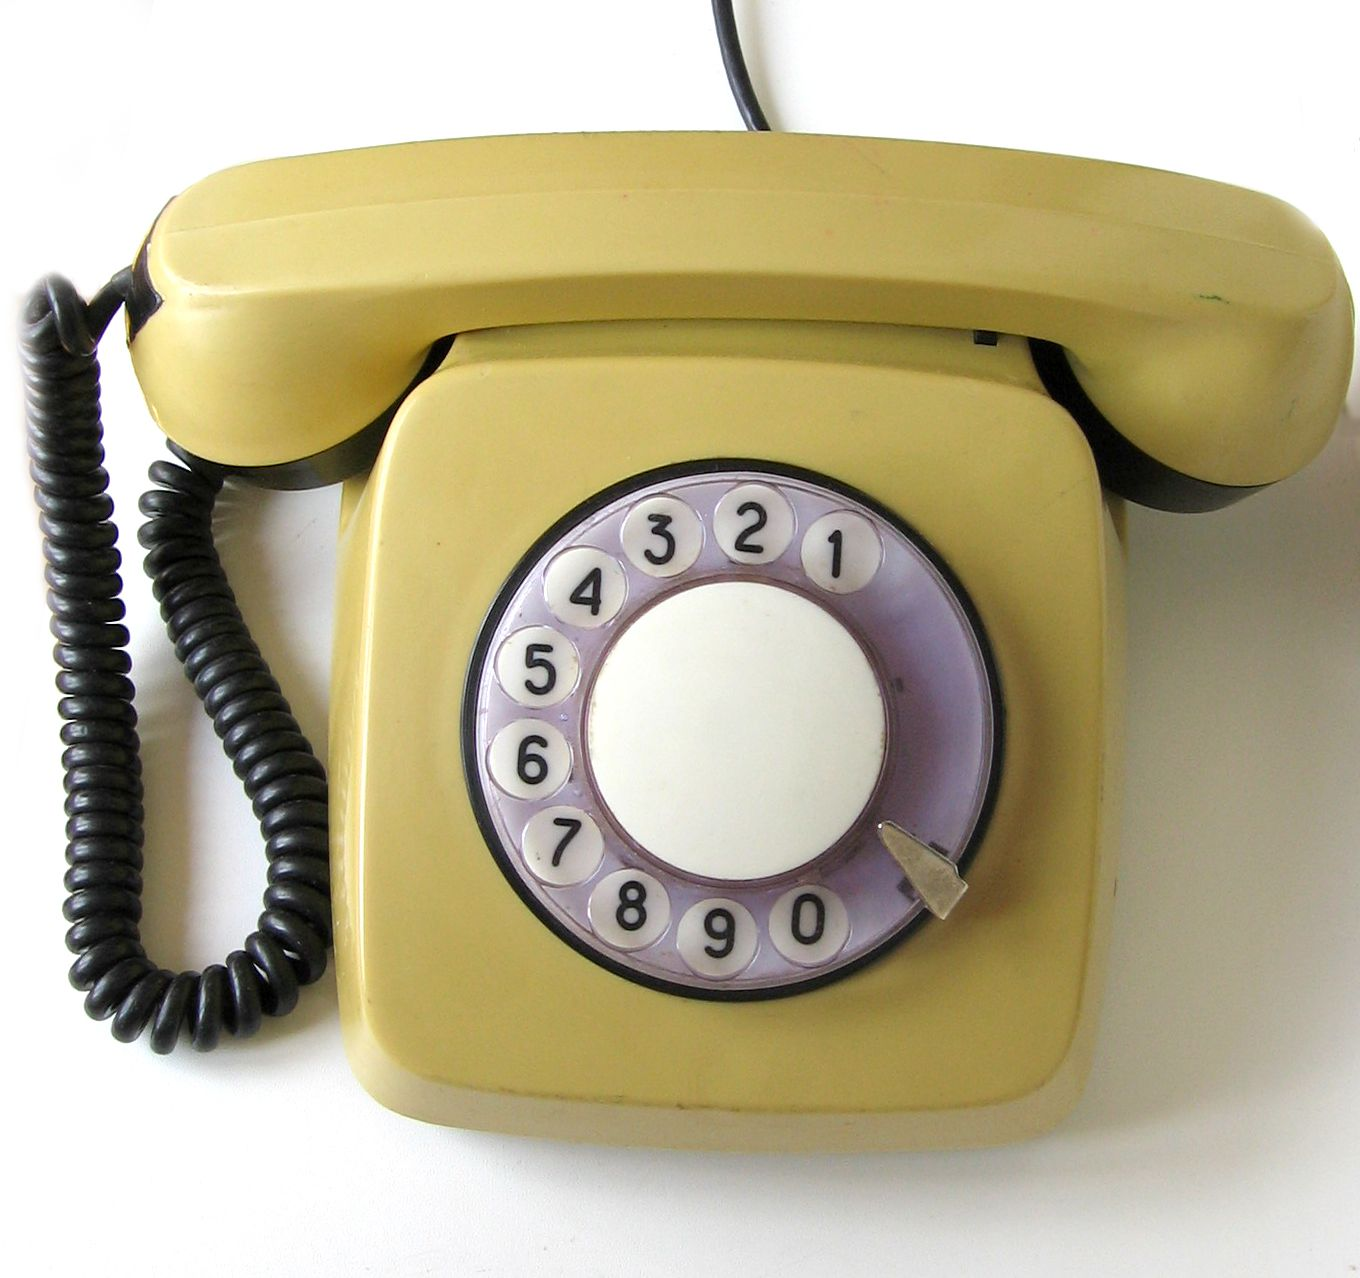 17 Best images about Rotary Telephones on Pinterest | Technology ...